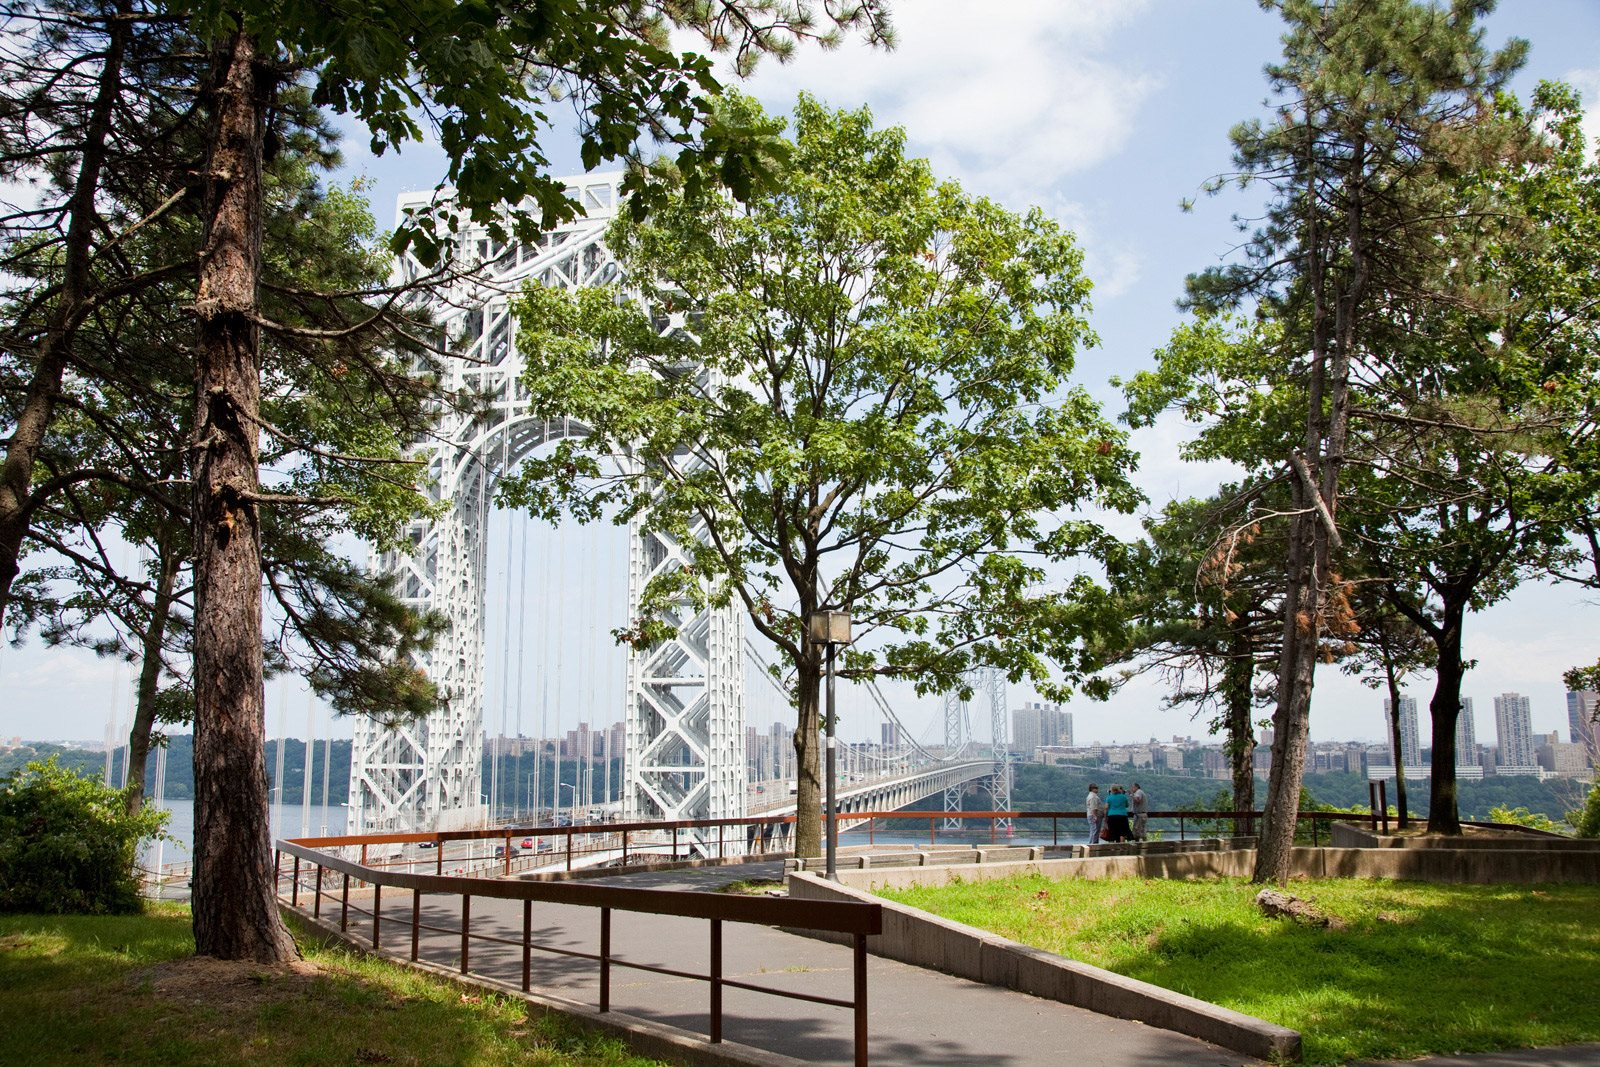 Trail access at Twenty50 by Windsor, Fort Lee, New Jersey